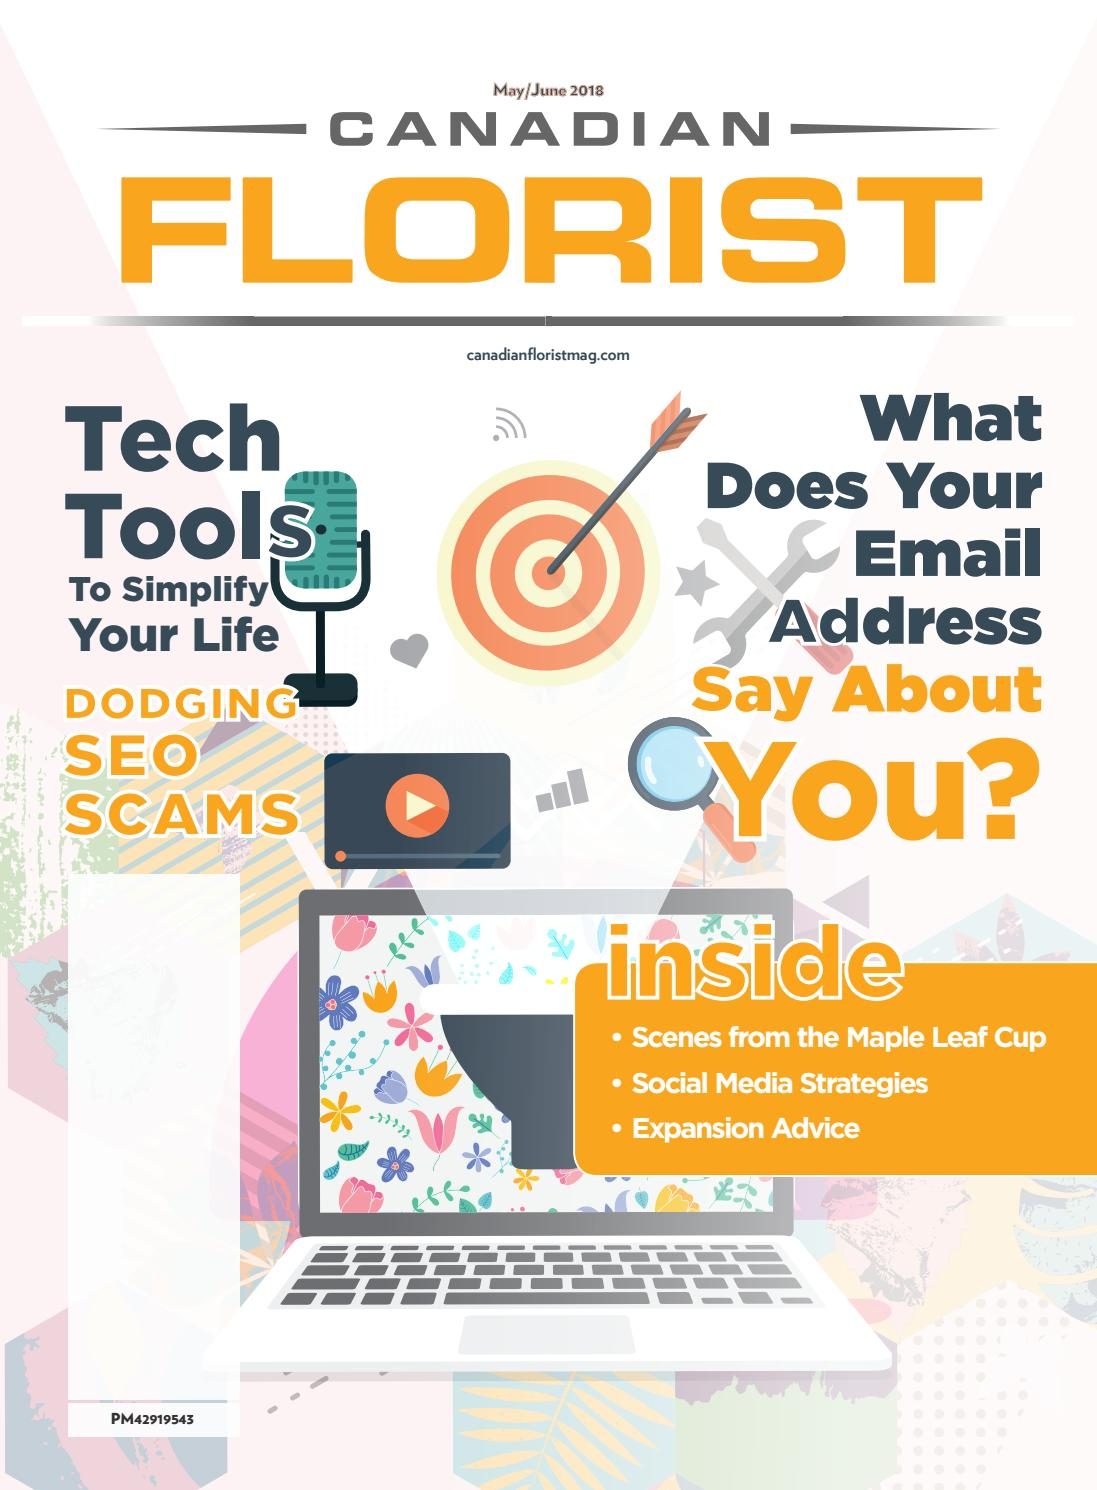 Canadian Florist - May 2018 by Strider Media - issuu